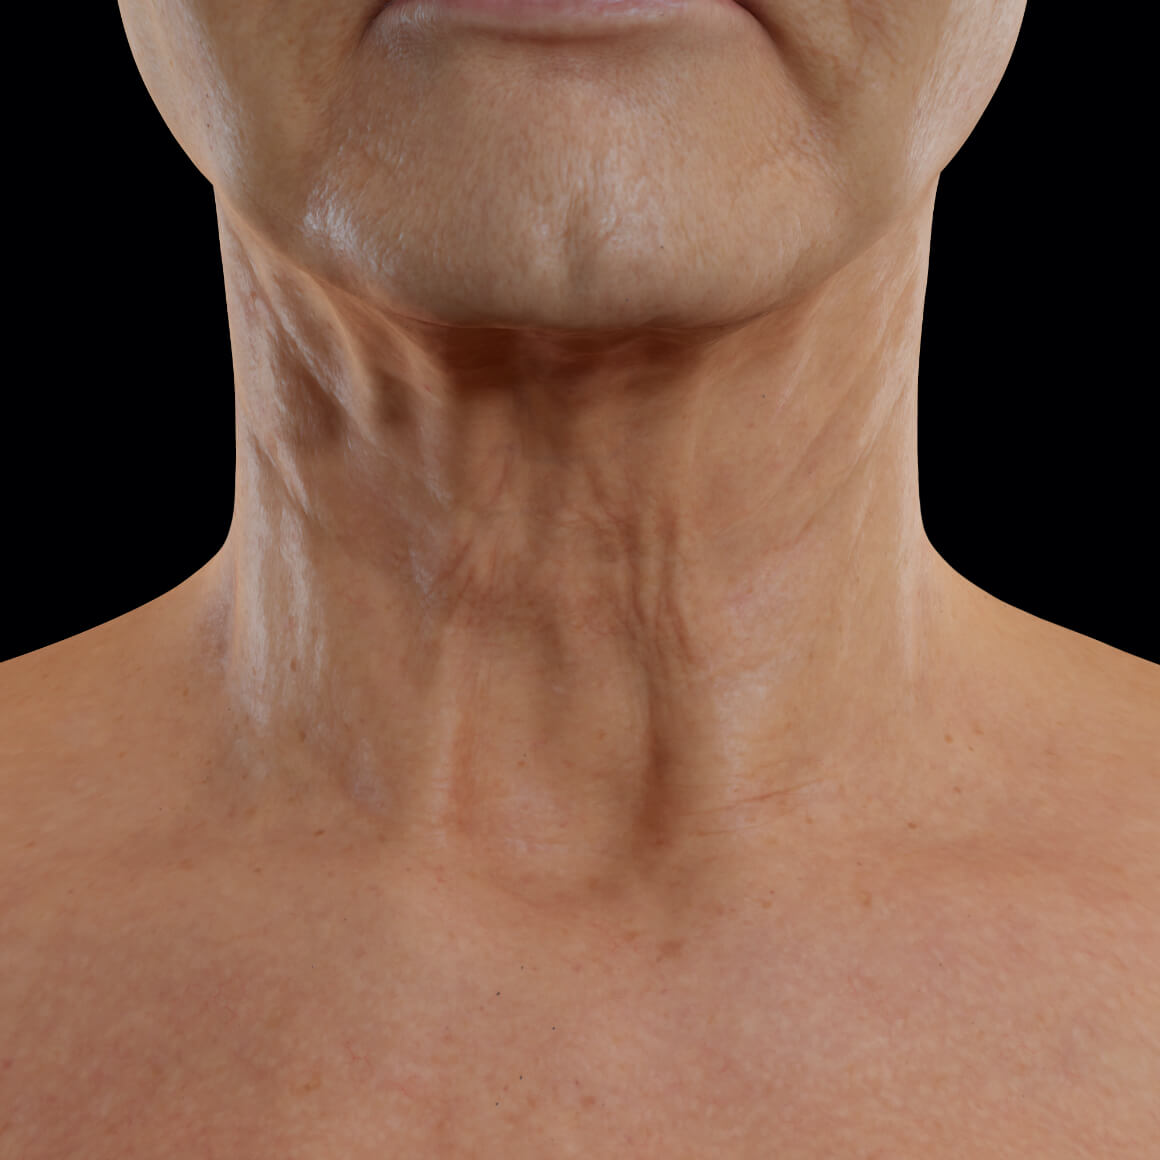 Female patient from Clinique Chloé facing front after Tight Sculpting laser treatments for neck skin tightening